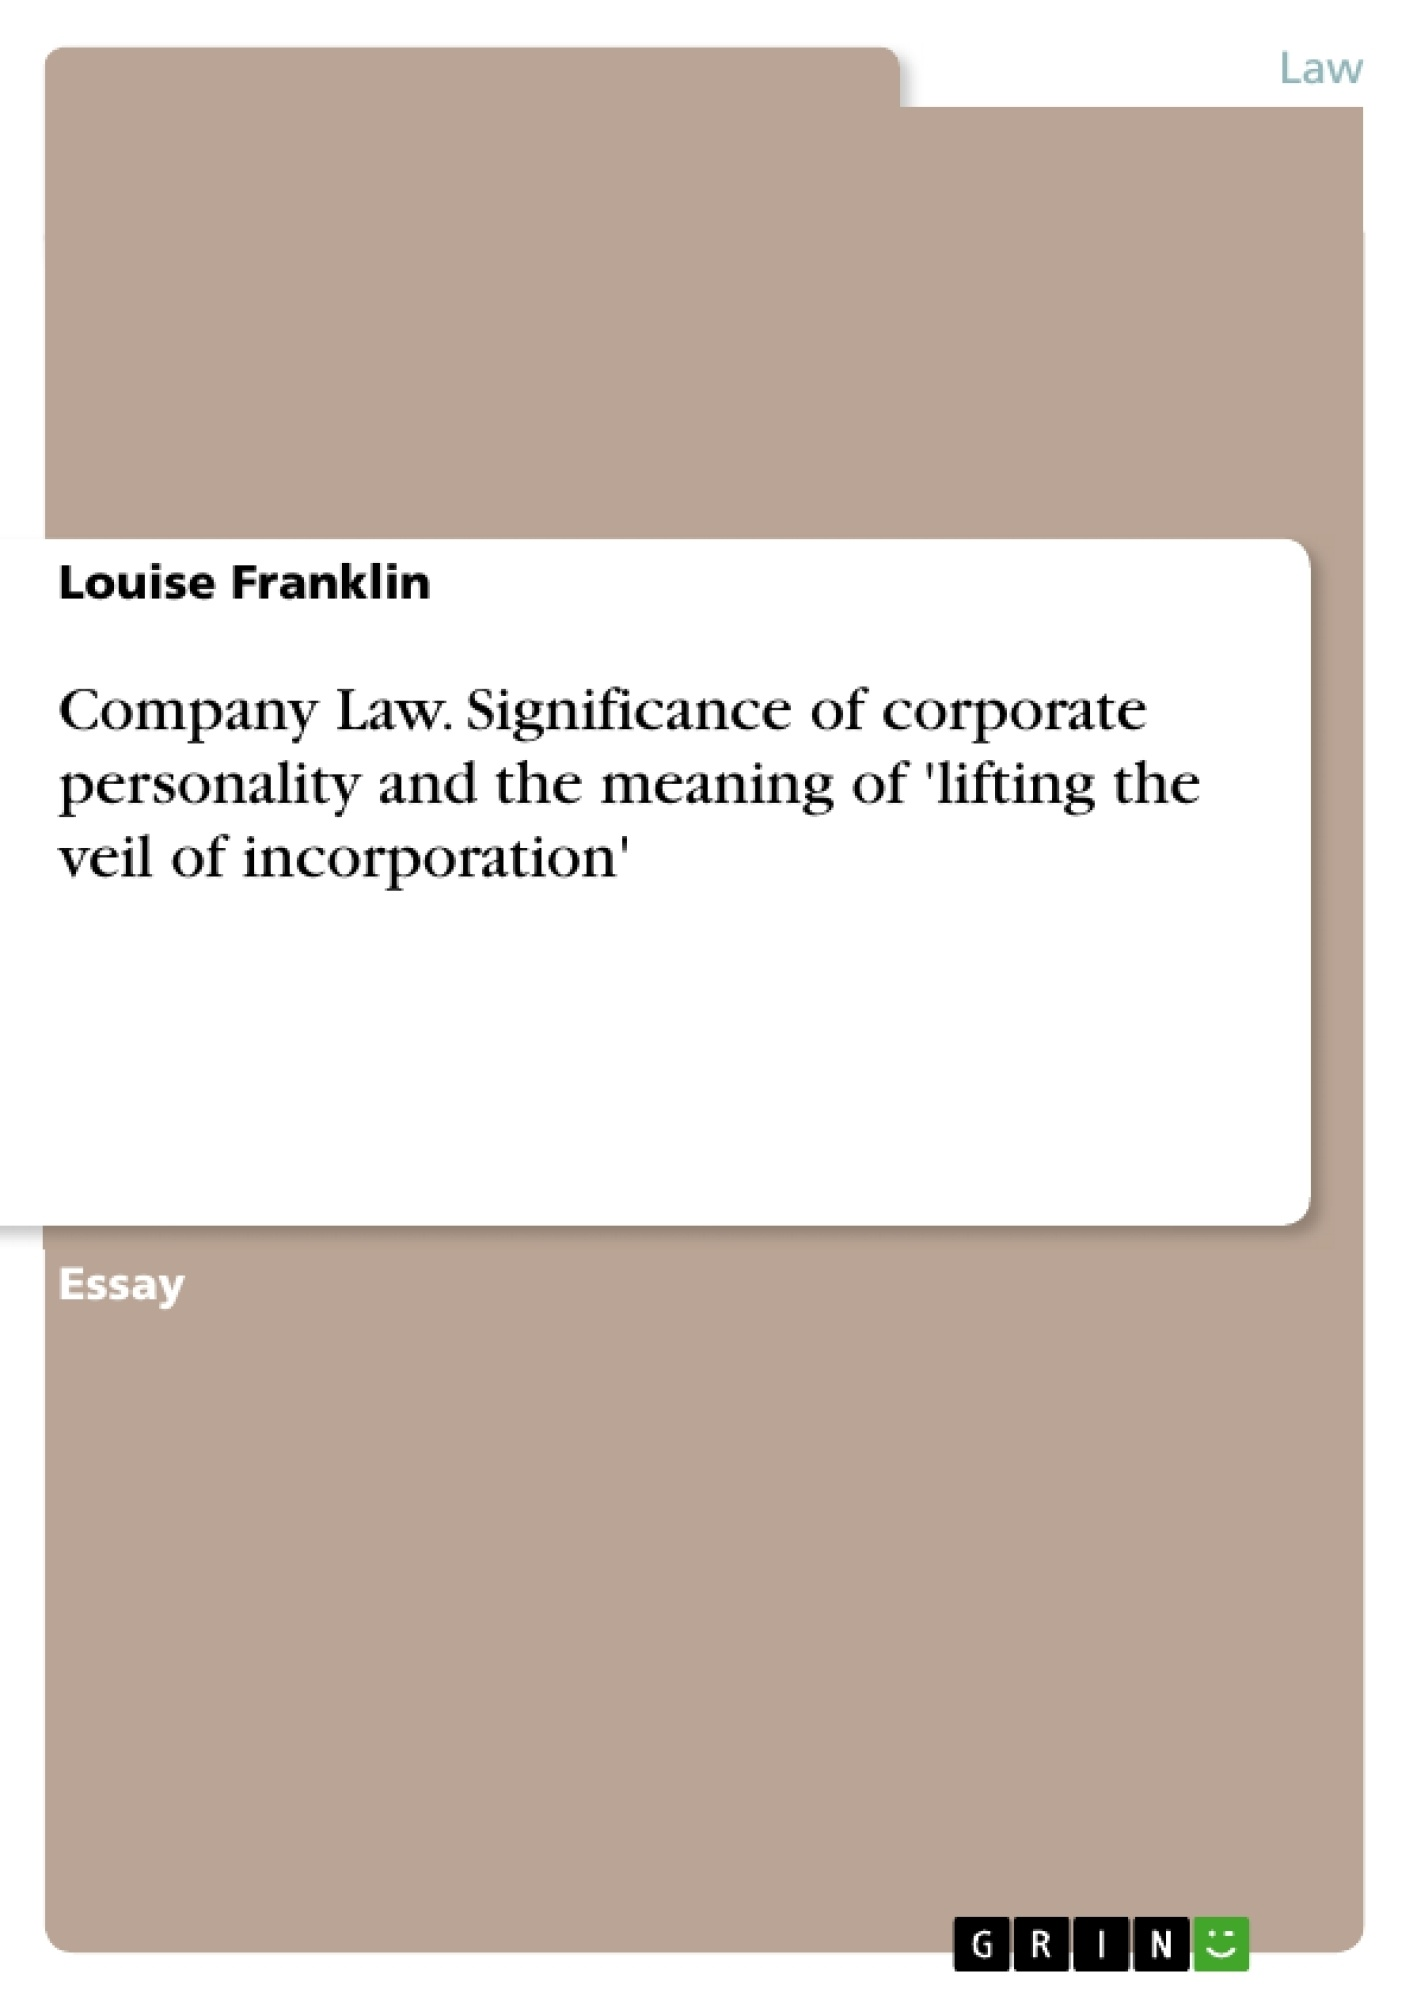 company law significance of corporate personality and the meaning  upload your own papers earn money and win an iphone x